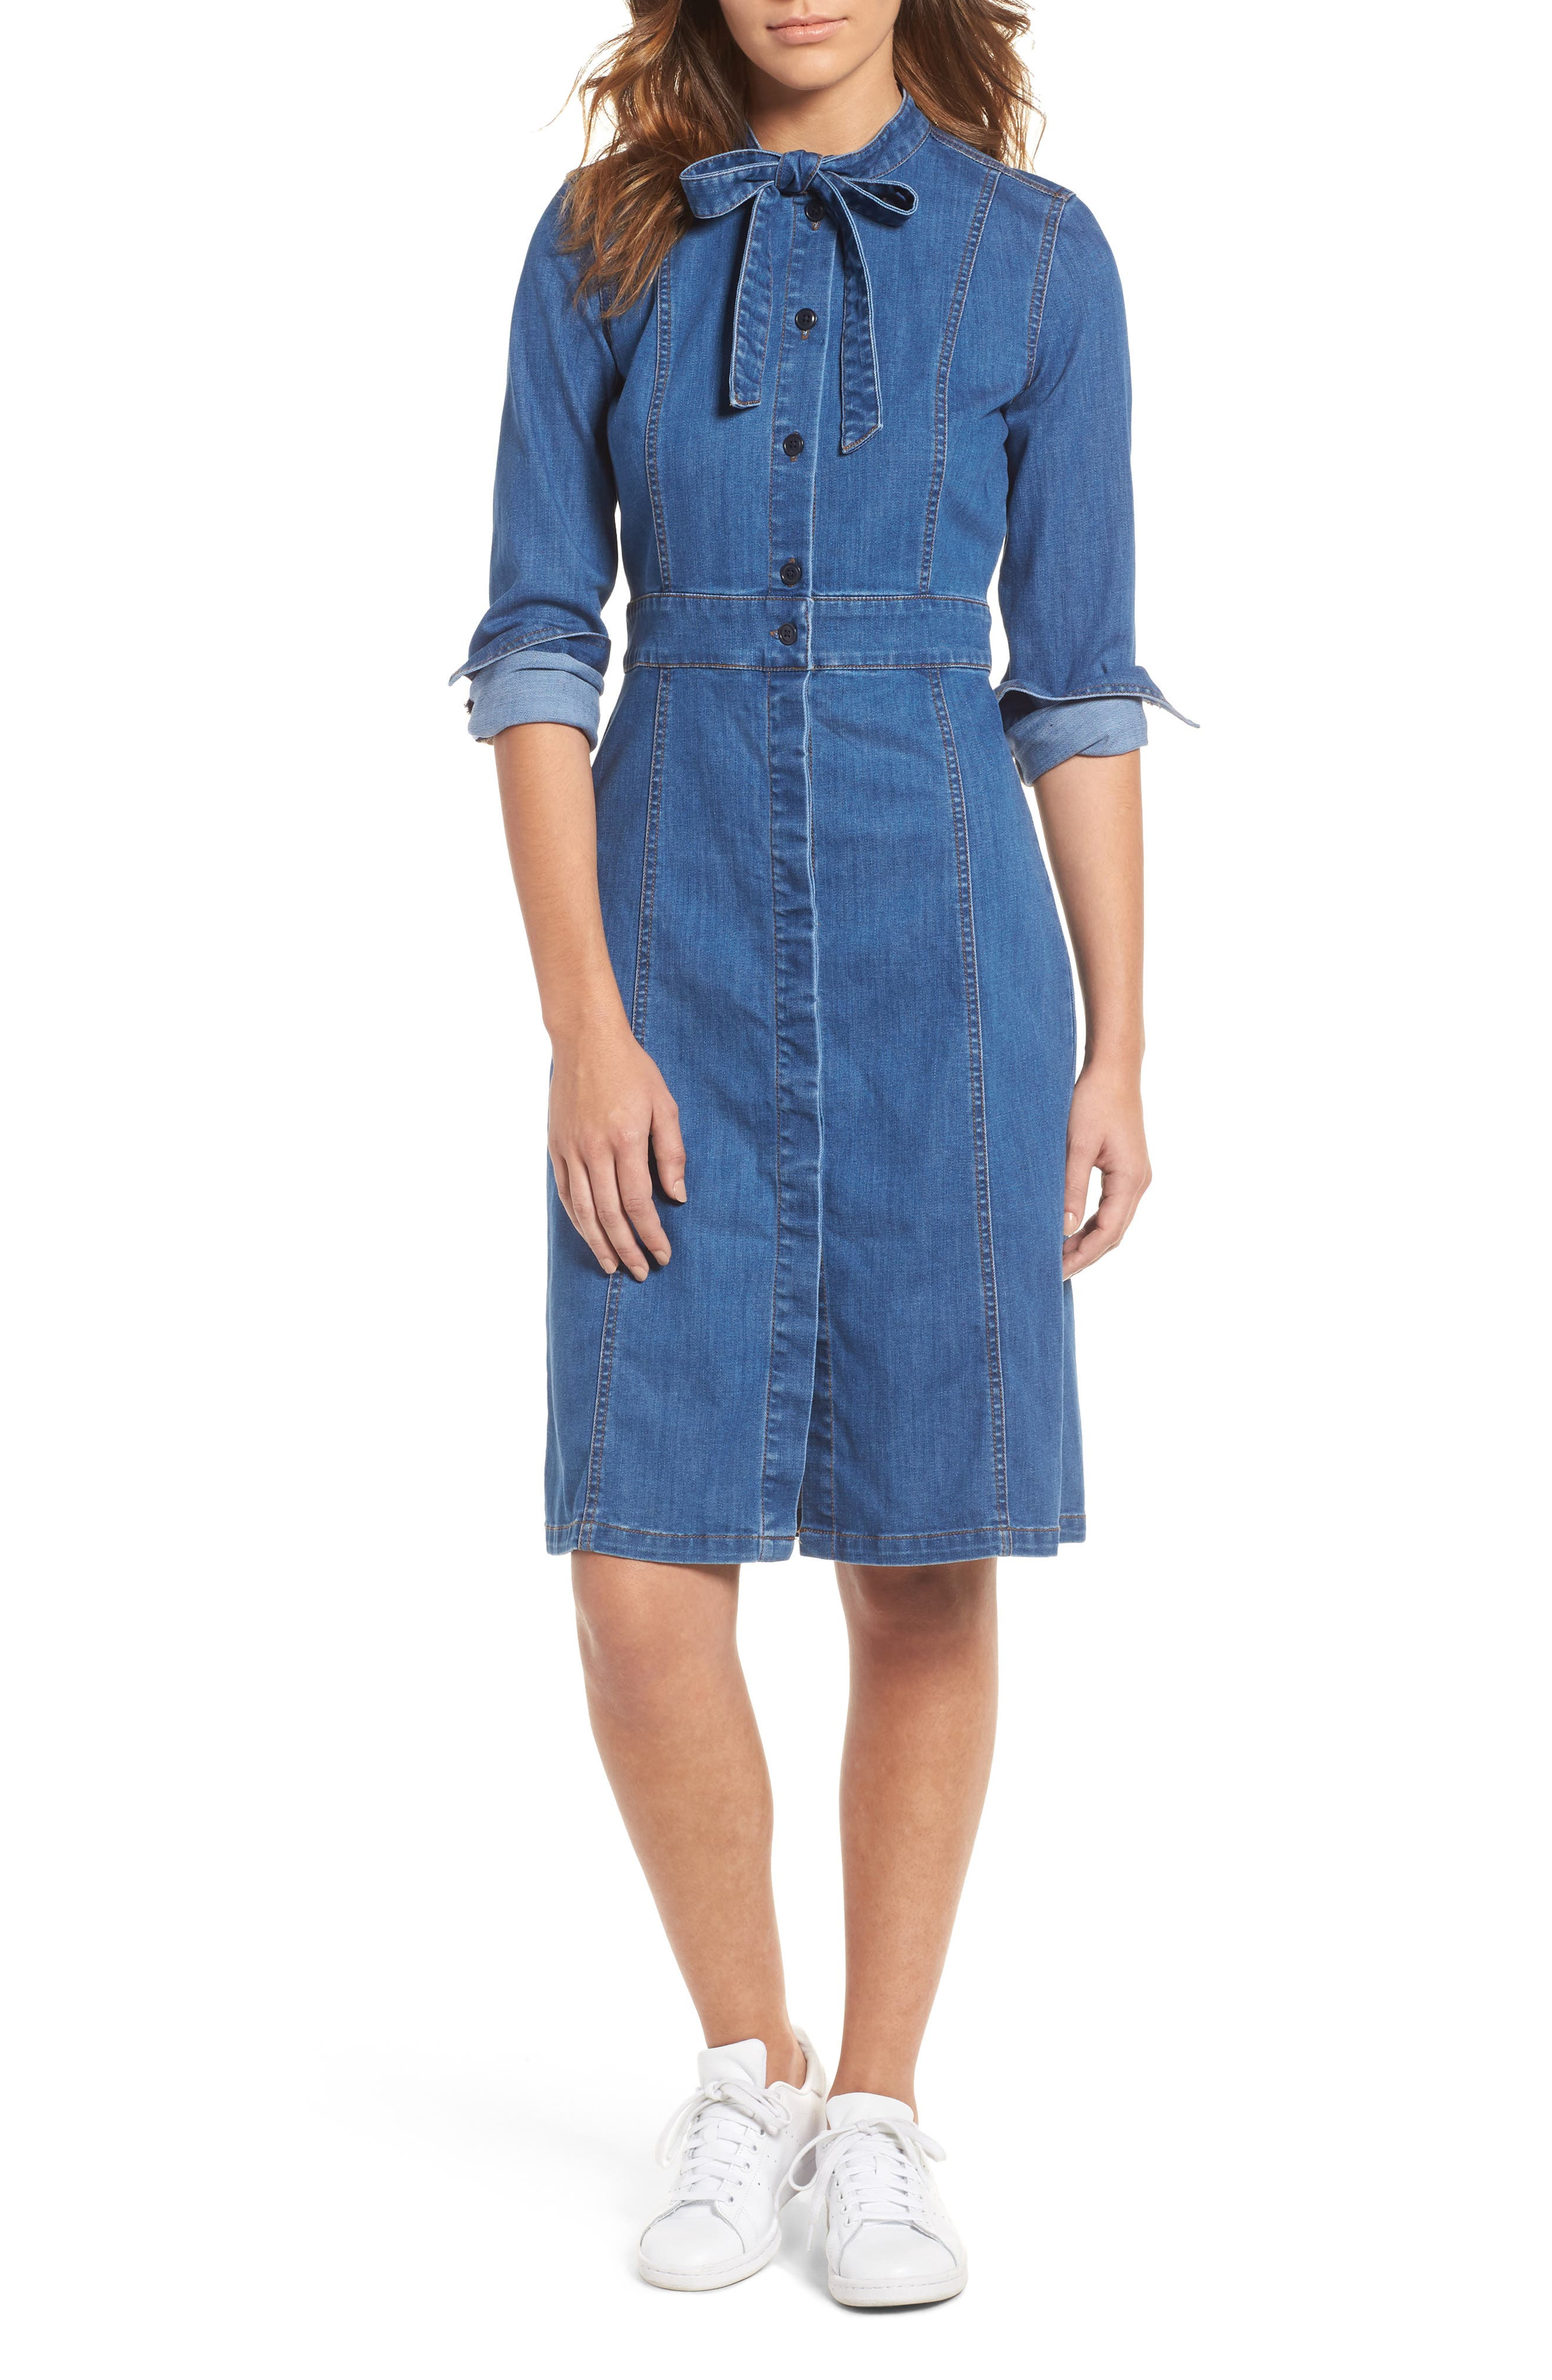 MADEWELL Denim Tie Neck Shirtdress, Main, color, 400